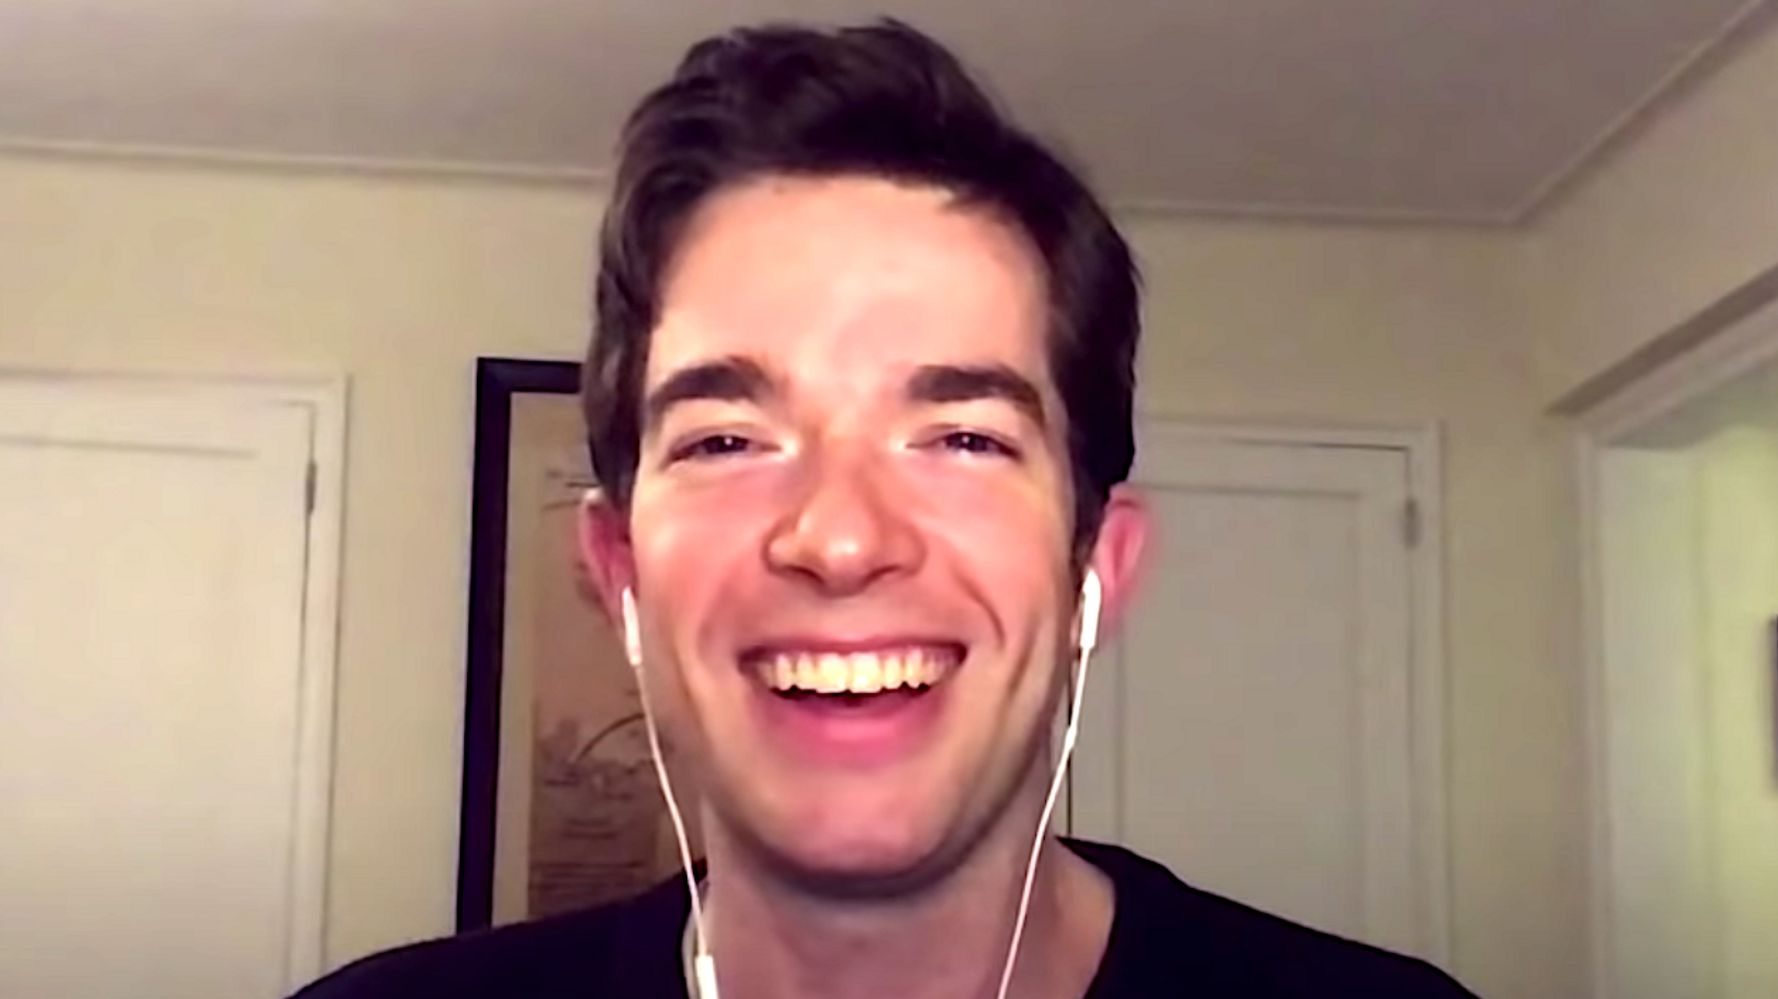 John Mulaney Was Stoked That Secret Service 'Opened A File' On Him